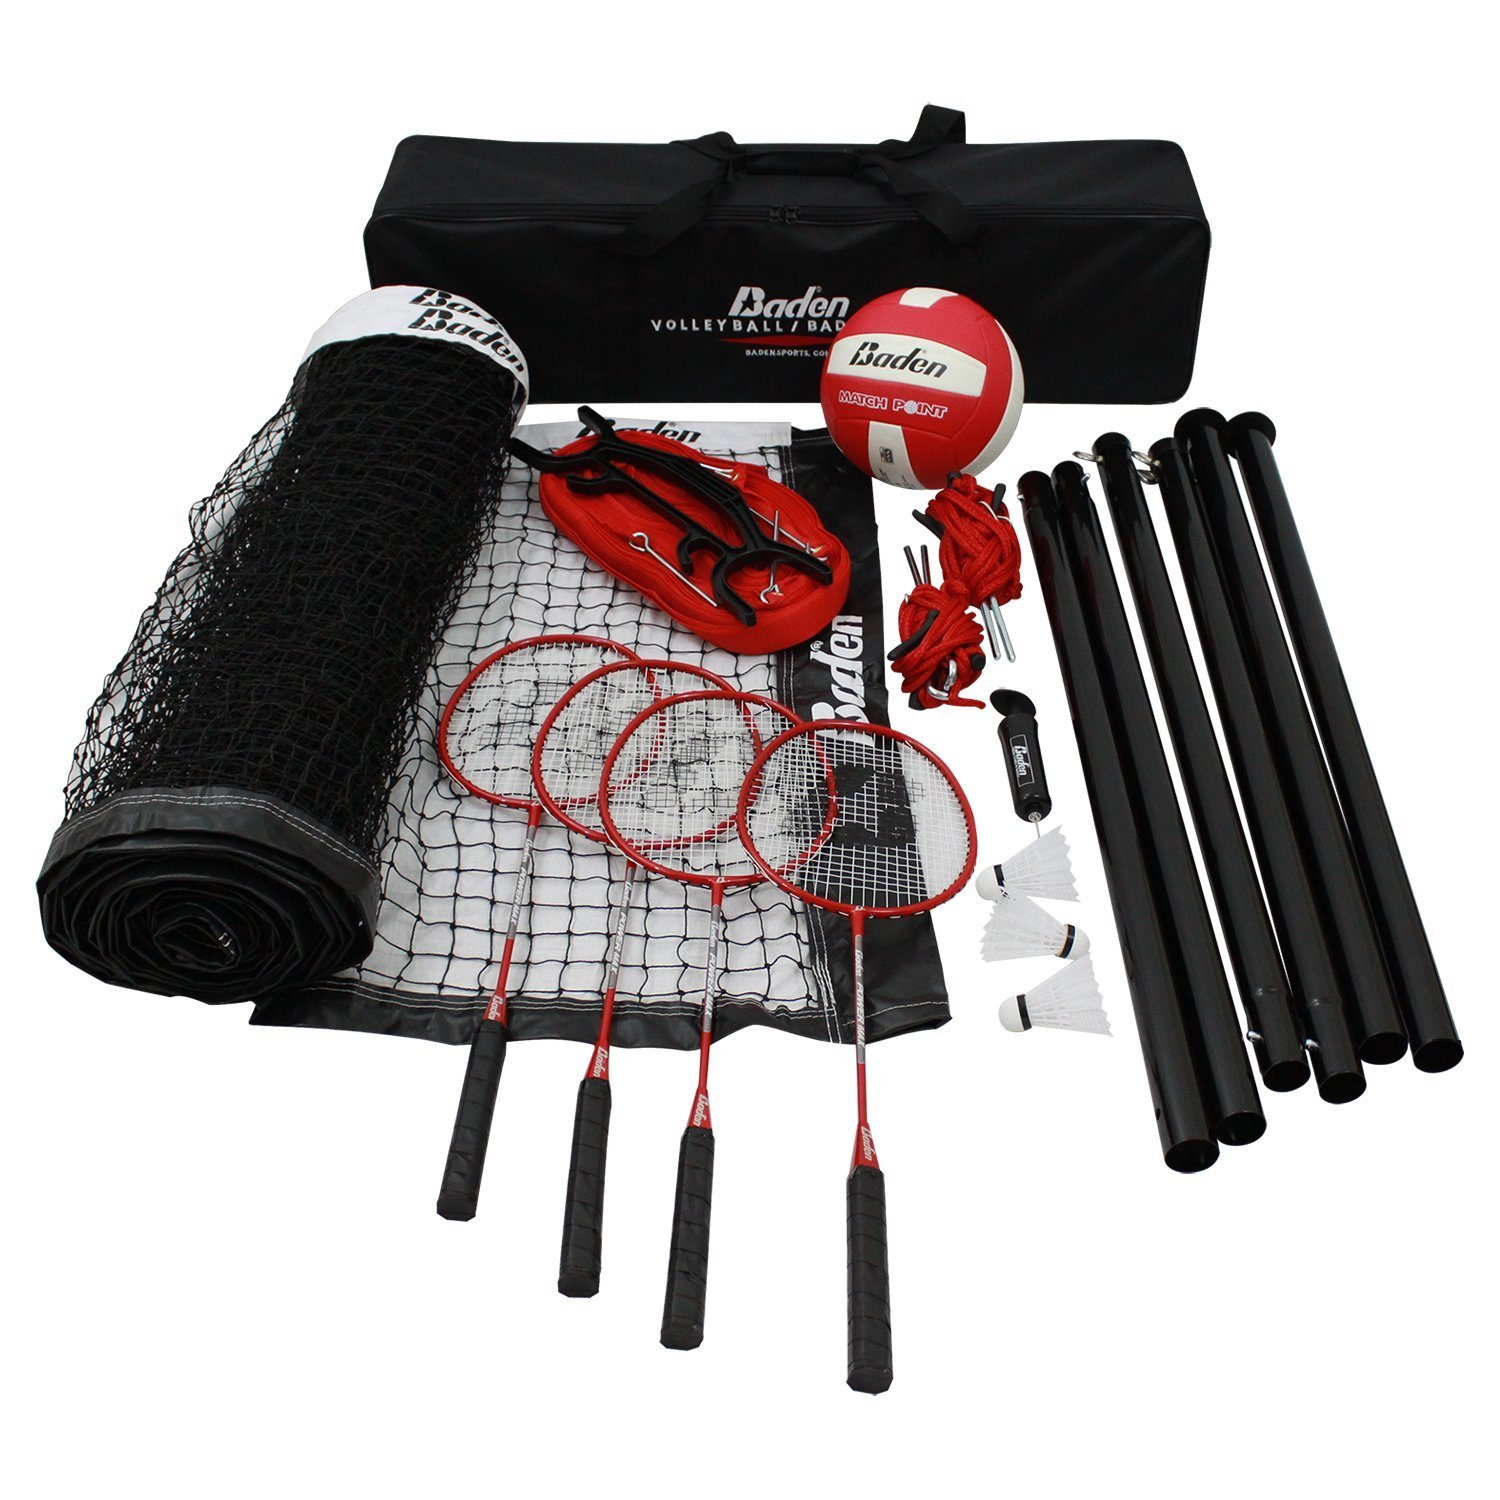 Bundle Includes 3 Items - Baden Champions Volleyball Badminton Set, Flickin' Chicken and Champion Sports Wooden Ring Toss Game by Baden, Champion Sports & Haywire Group (Image #2)